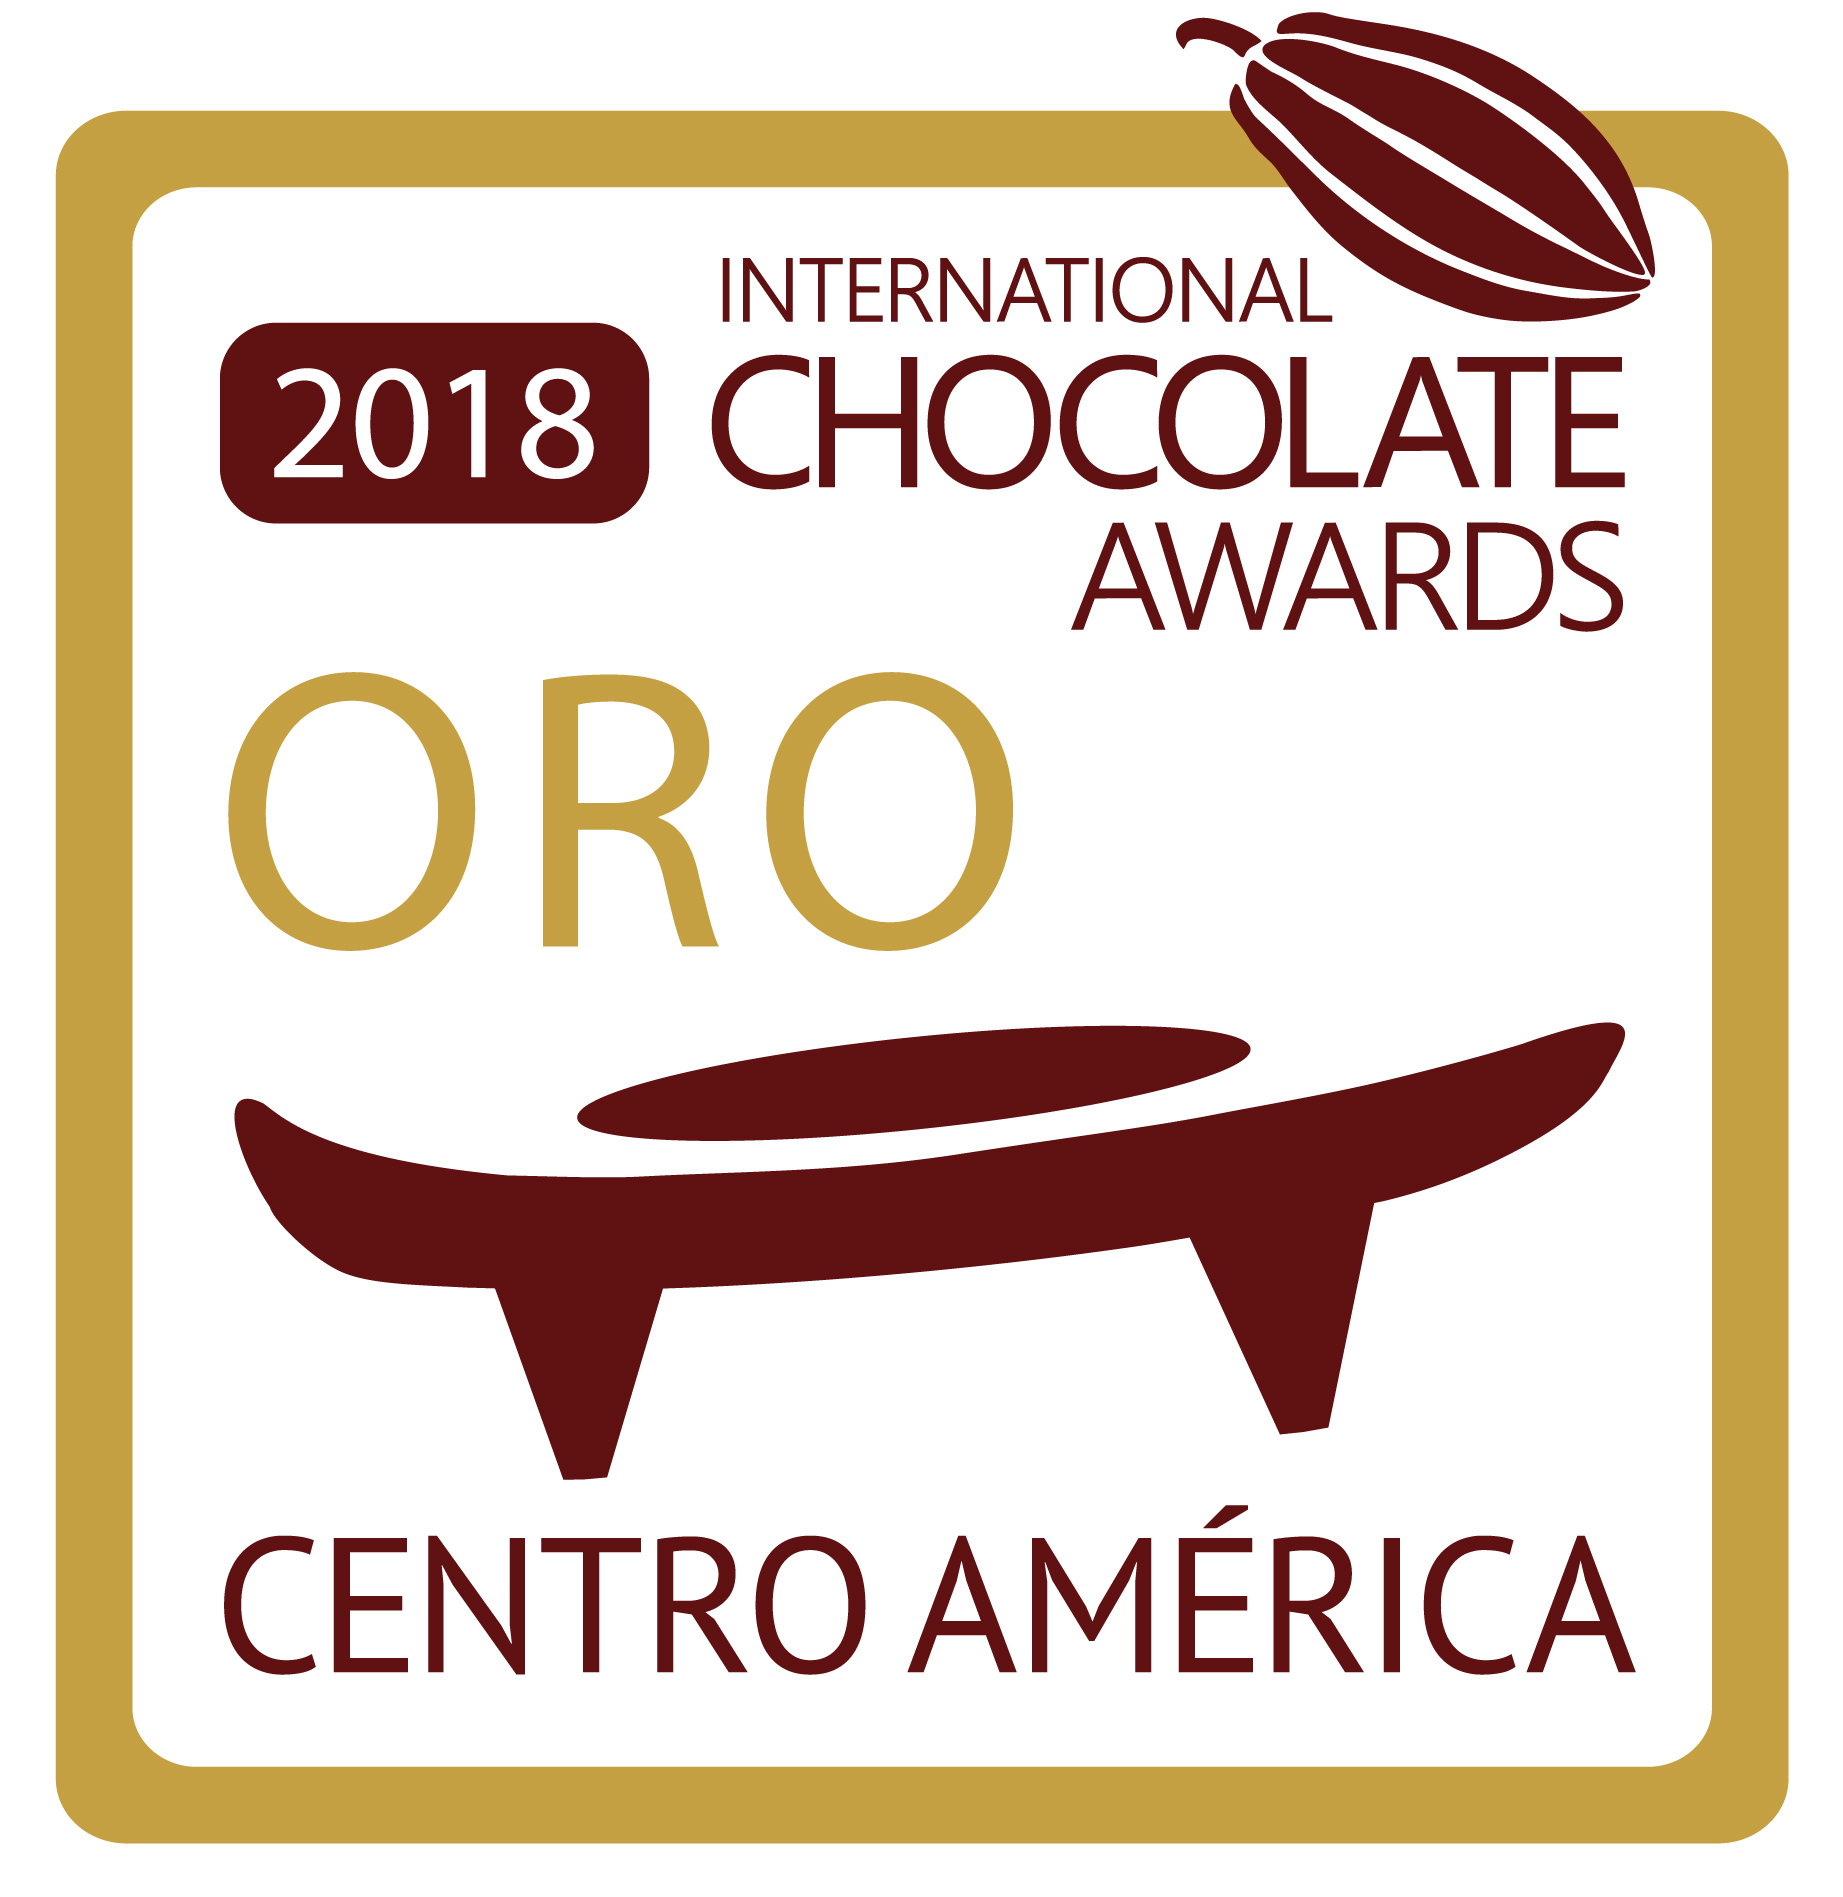 ica-prize-logo-2018-gold-centro-america-support-rgb